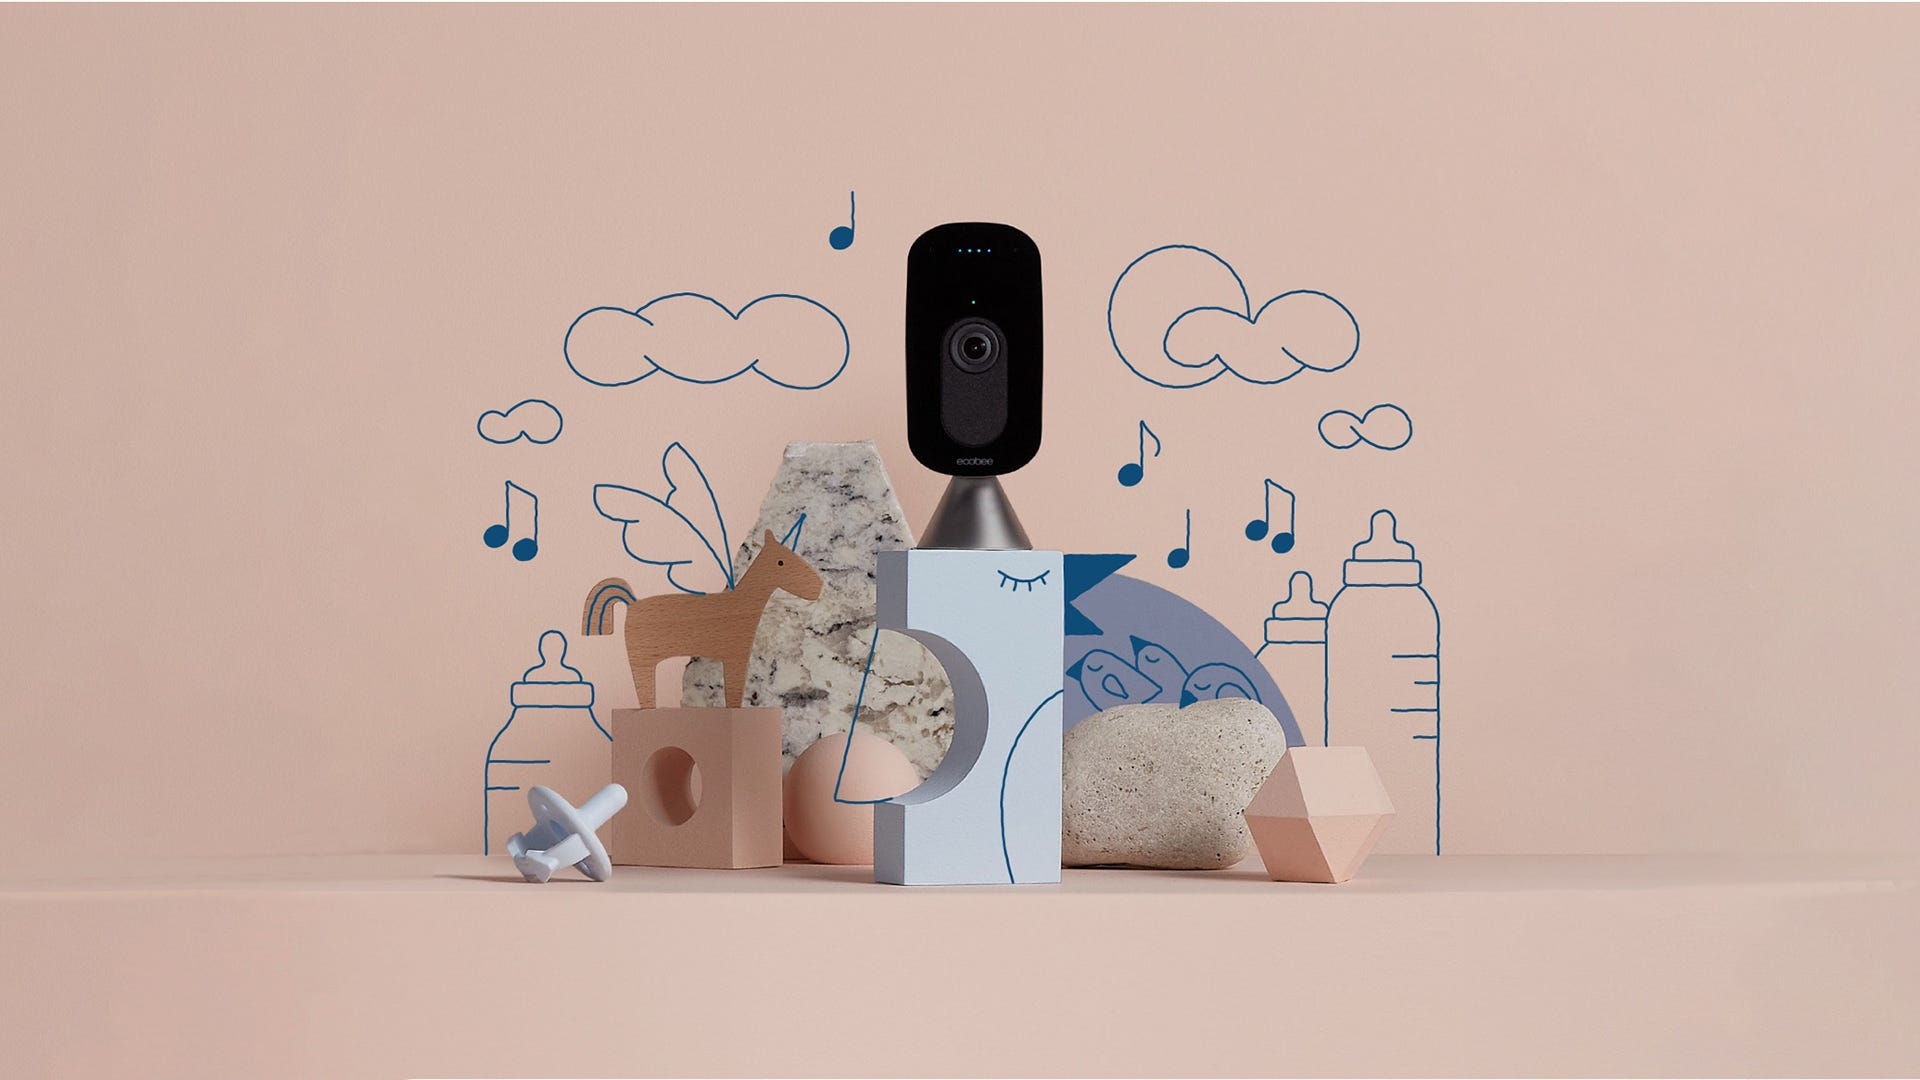 The ecobee SmartCamera Is Now Better at Being a Baby Monitor thumbnail